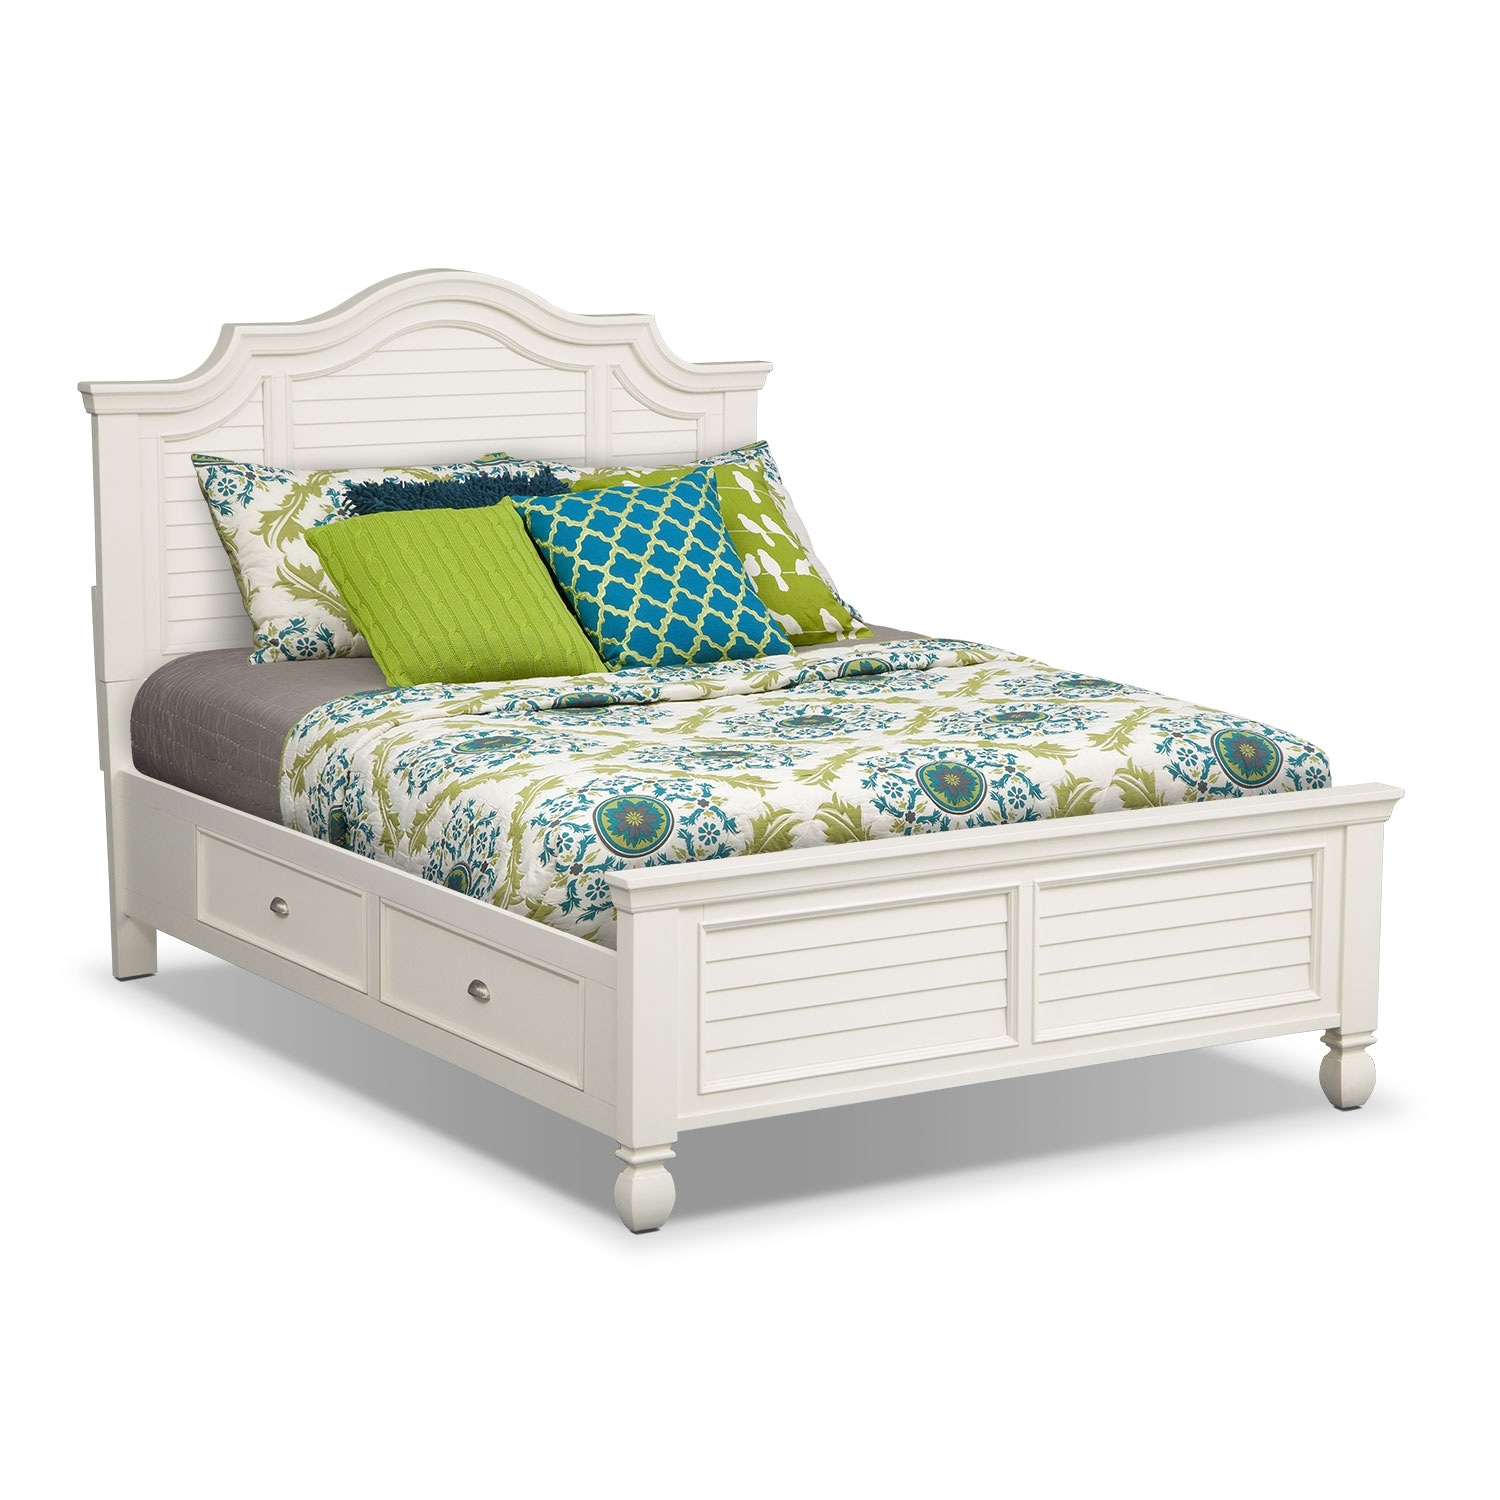 [Plantation Cove White Storage King Storage Bed]